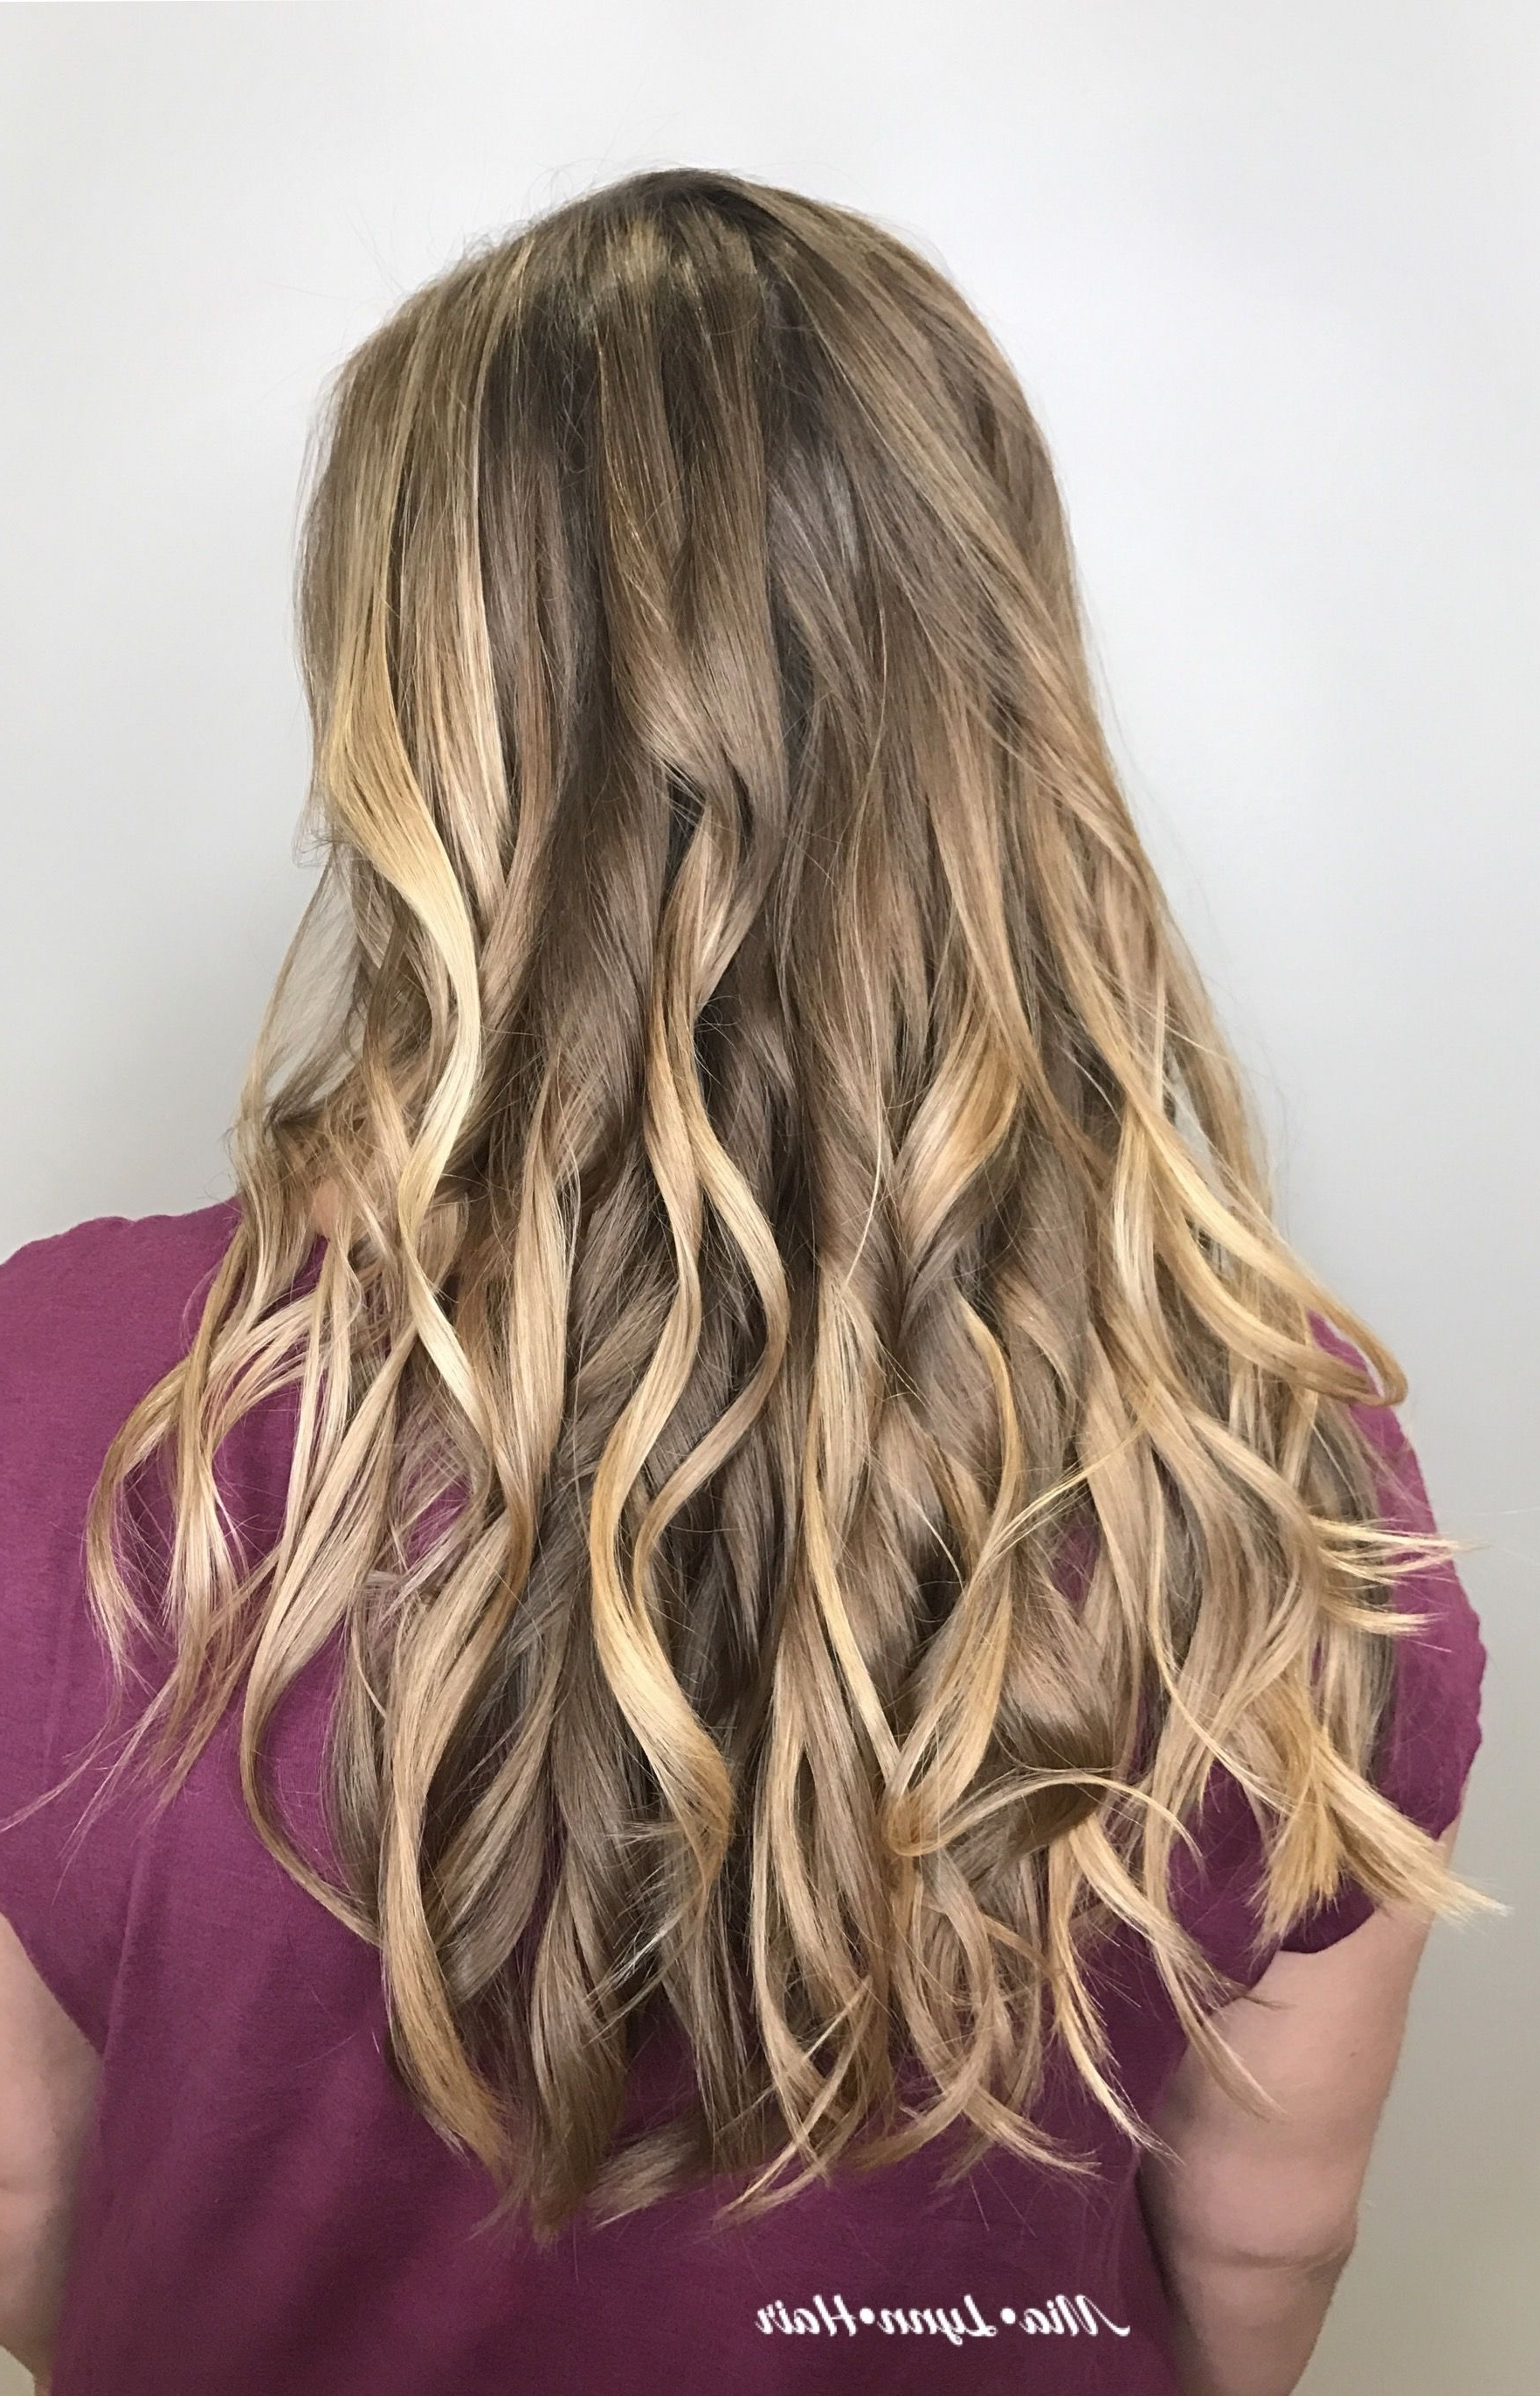 Balayage, Foilayage, Blonde Brunette, Bronde, Warm Balayage Regarding Widely Used Bronde Beach Waves Blonde Hairstyles (View 2 of 20)